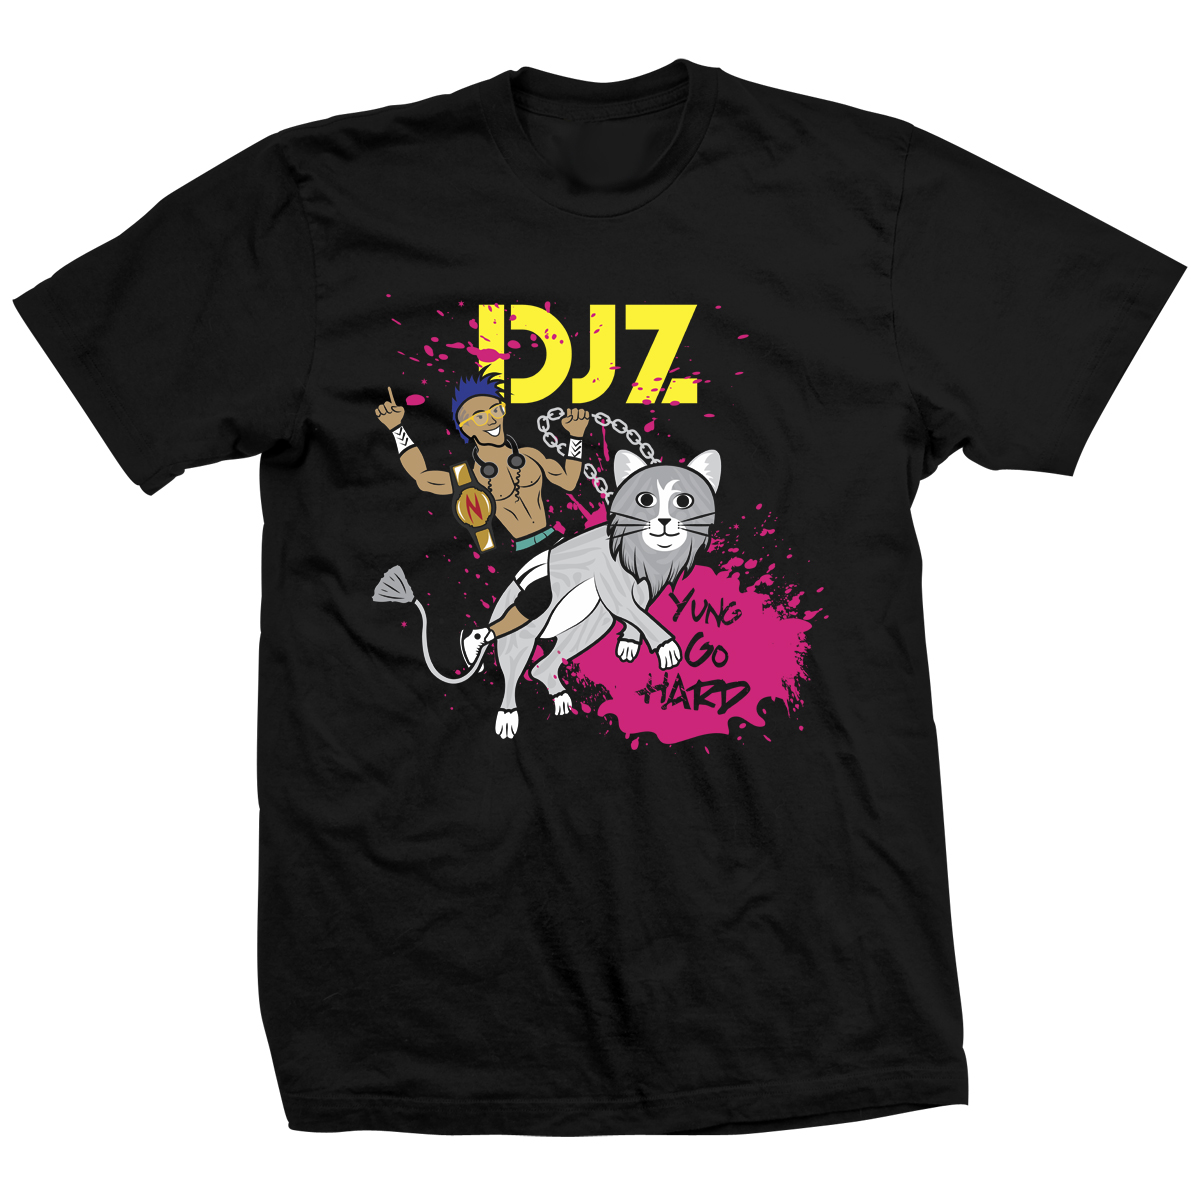 Zema Ion Cat DJ Tho T-shirt